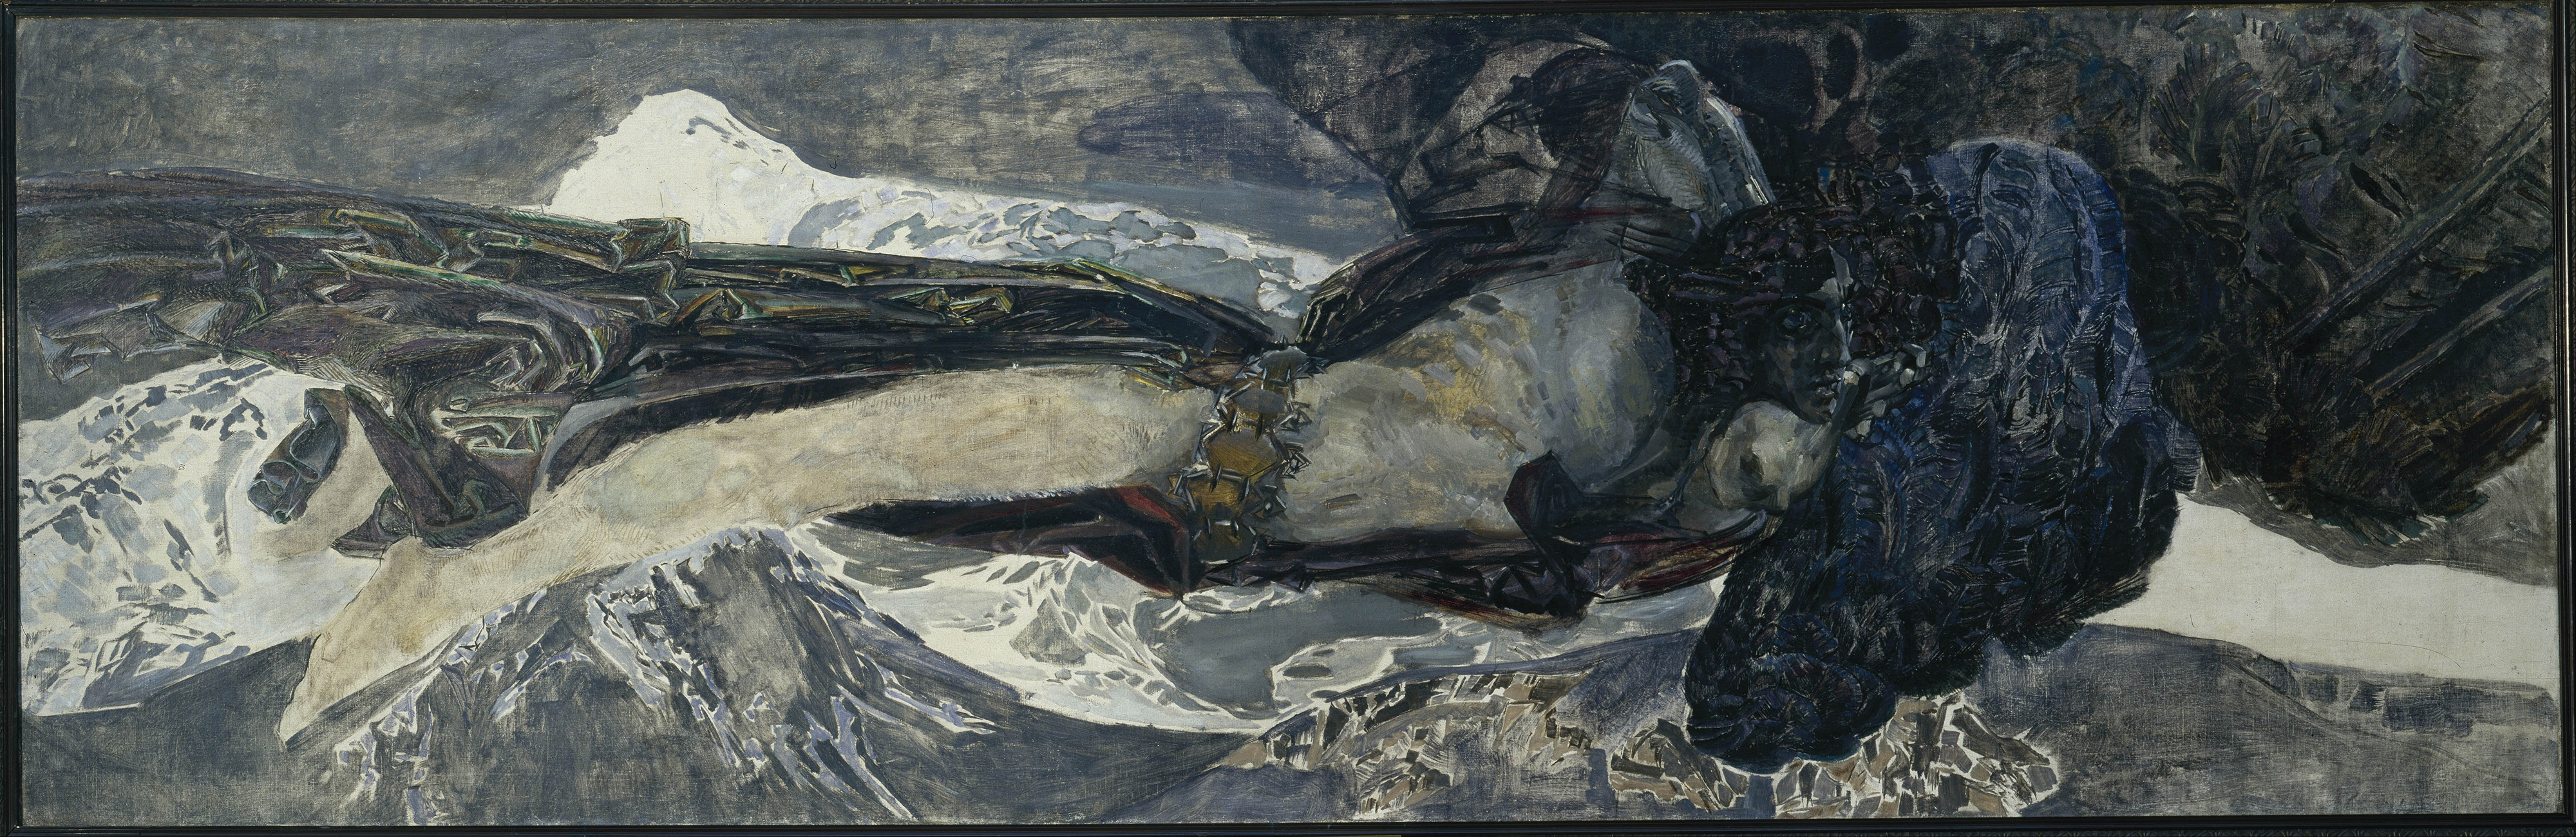 The Demon Flying, 1899 — Mikhail Vrubel,